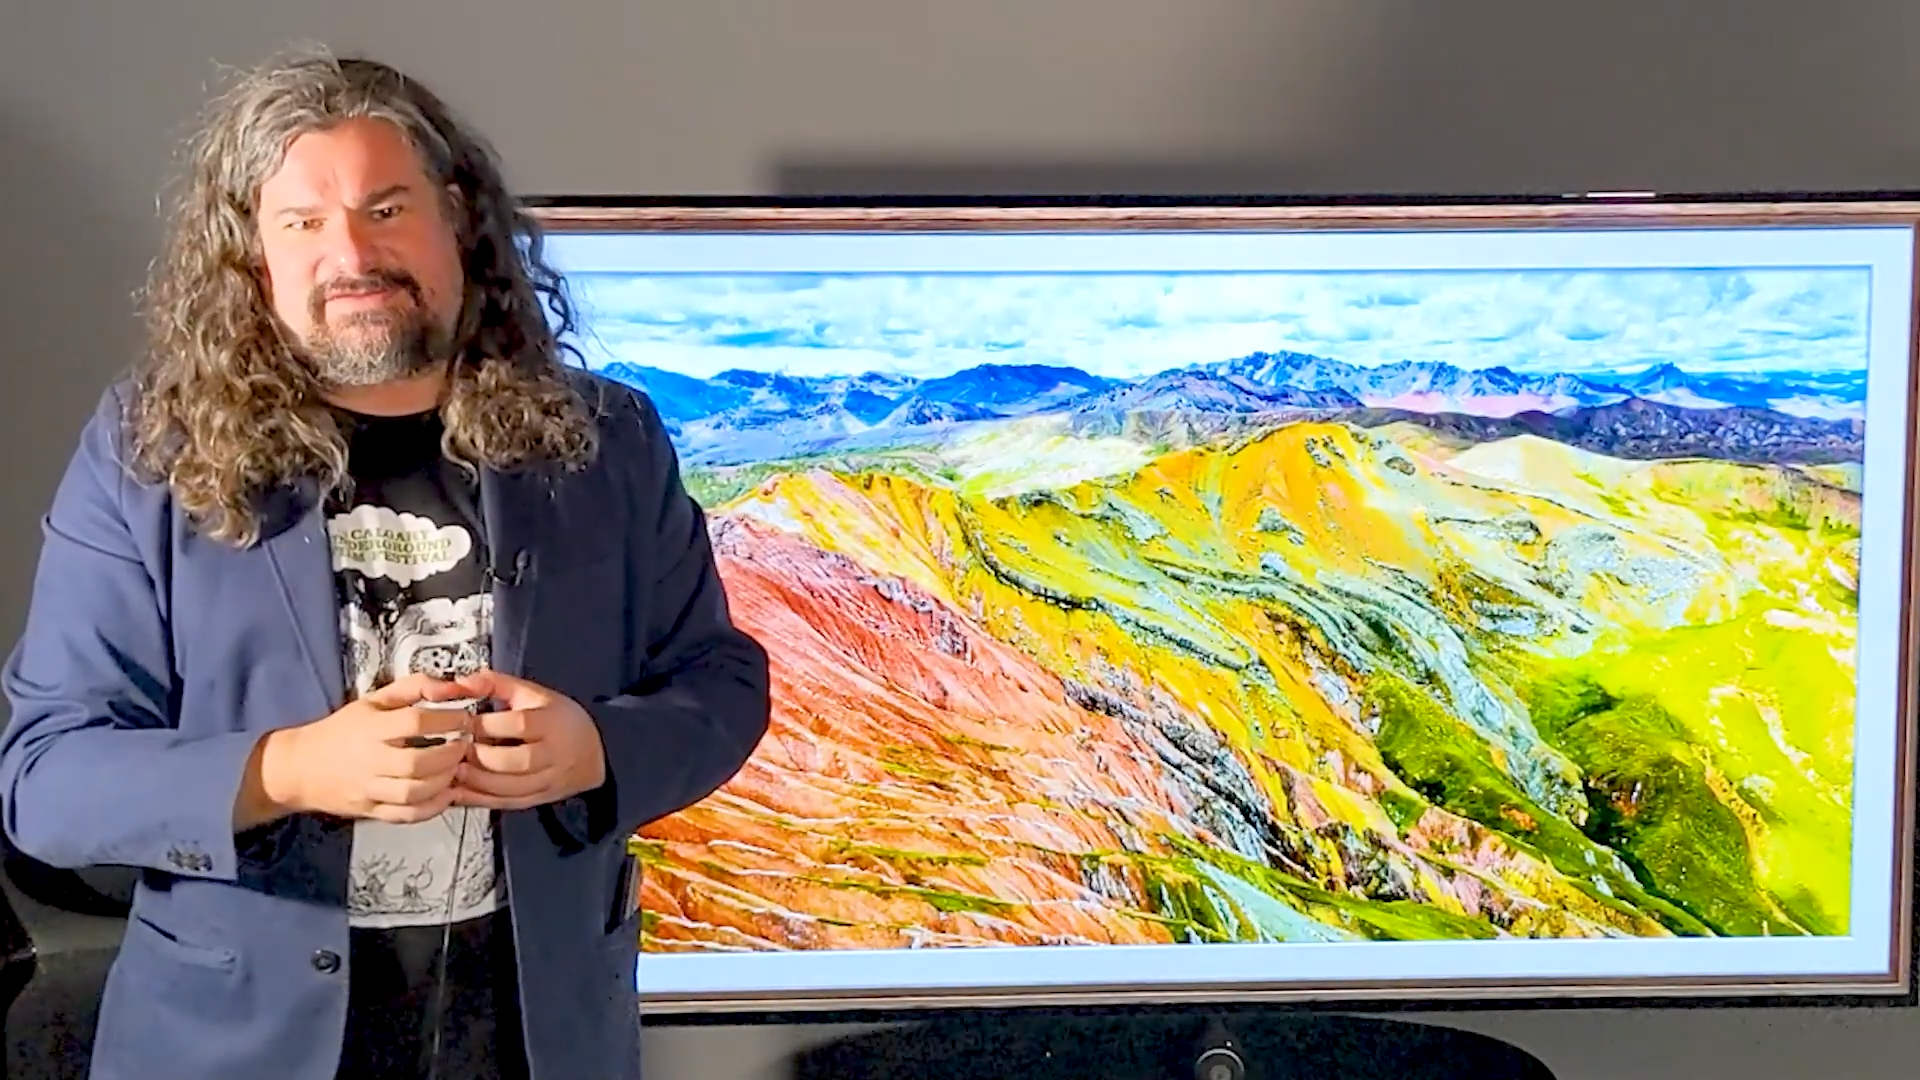 TV Review: LG 77 OLED CX First Look